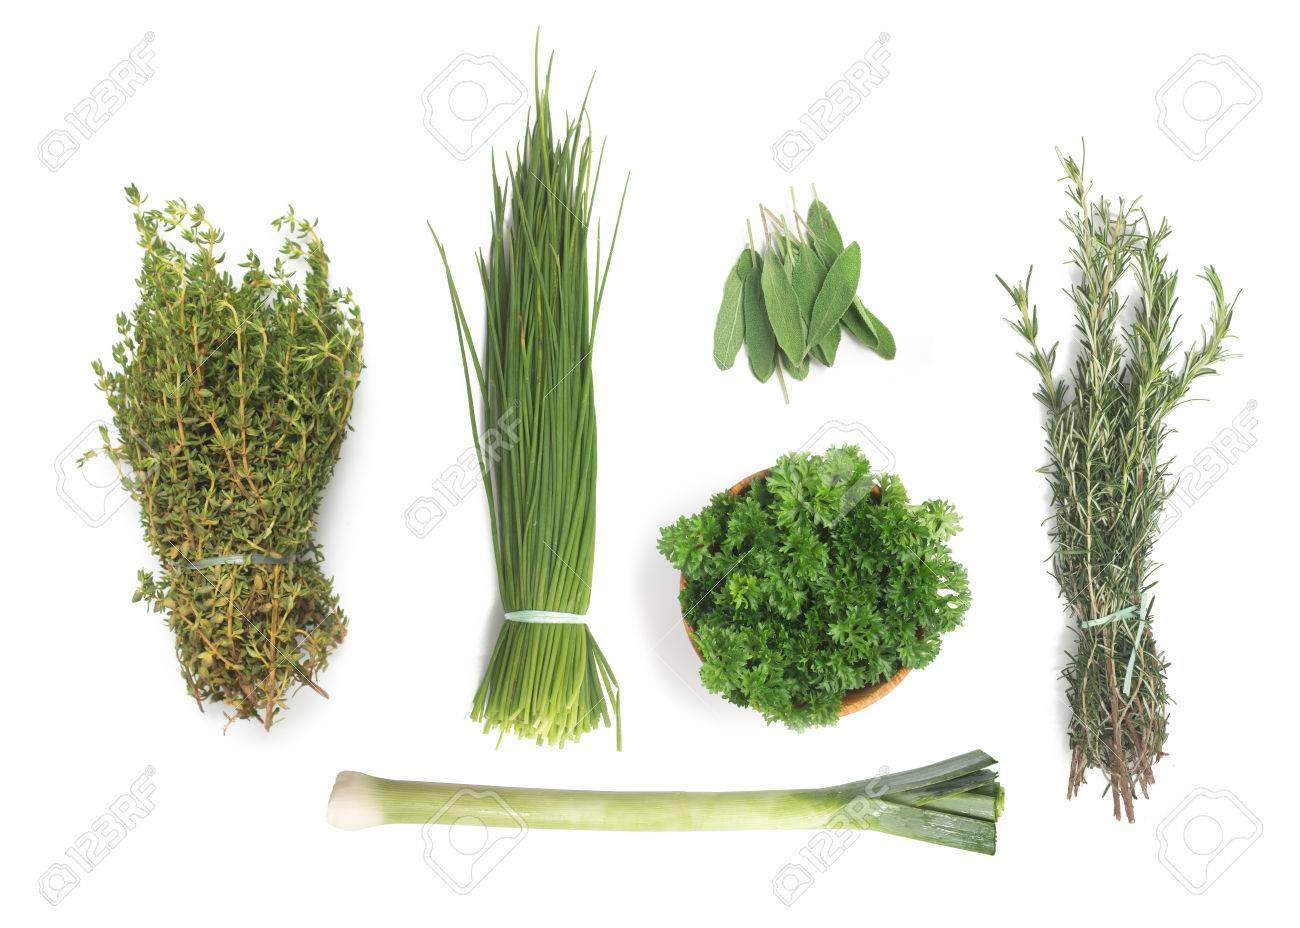 Types Of Fresh Herbs Rosemary Spring Onions Parsley Thyme